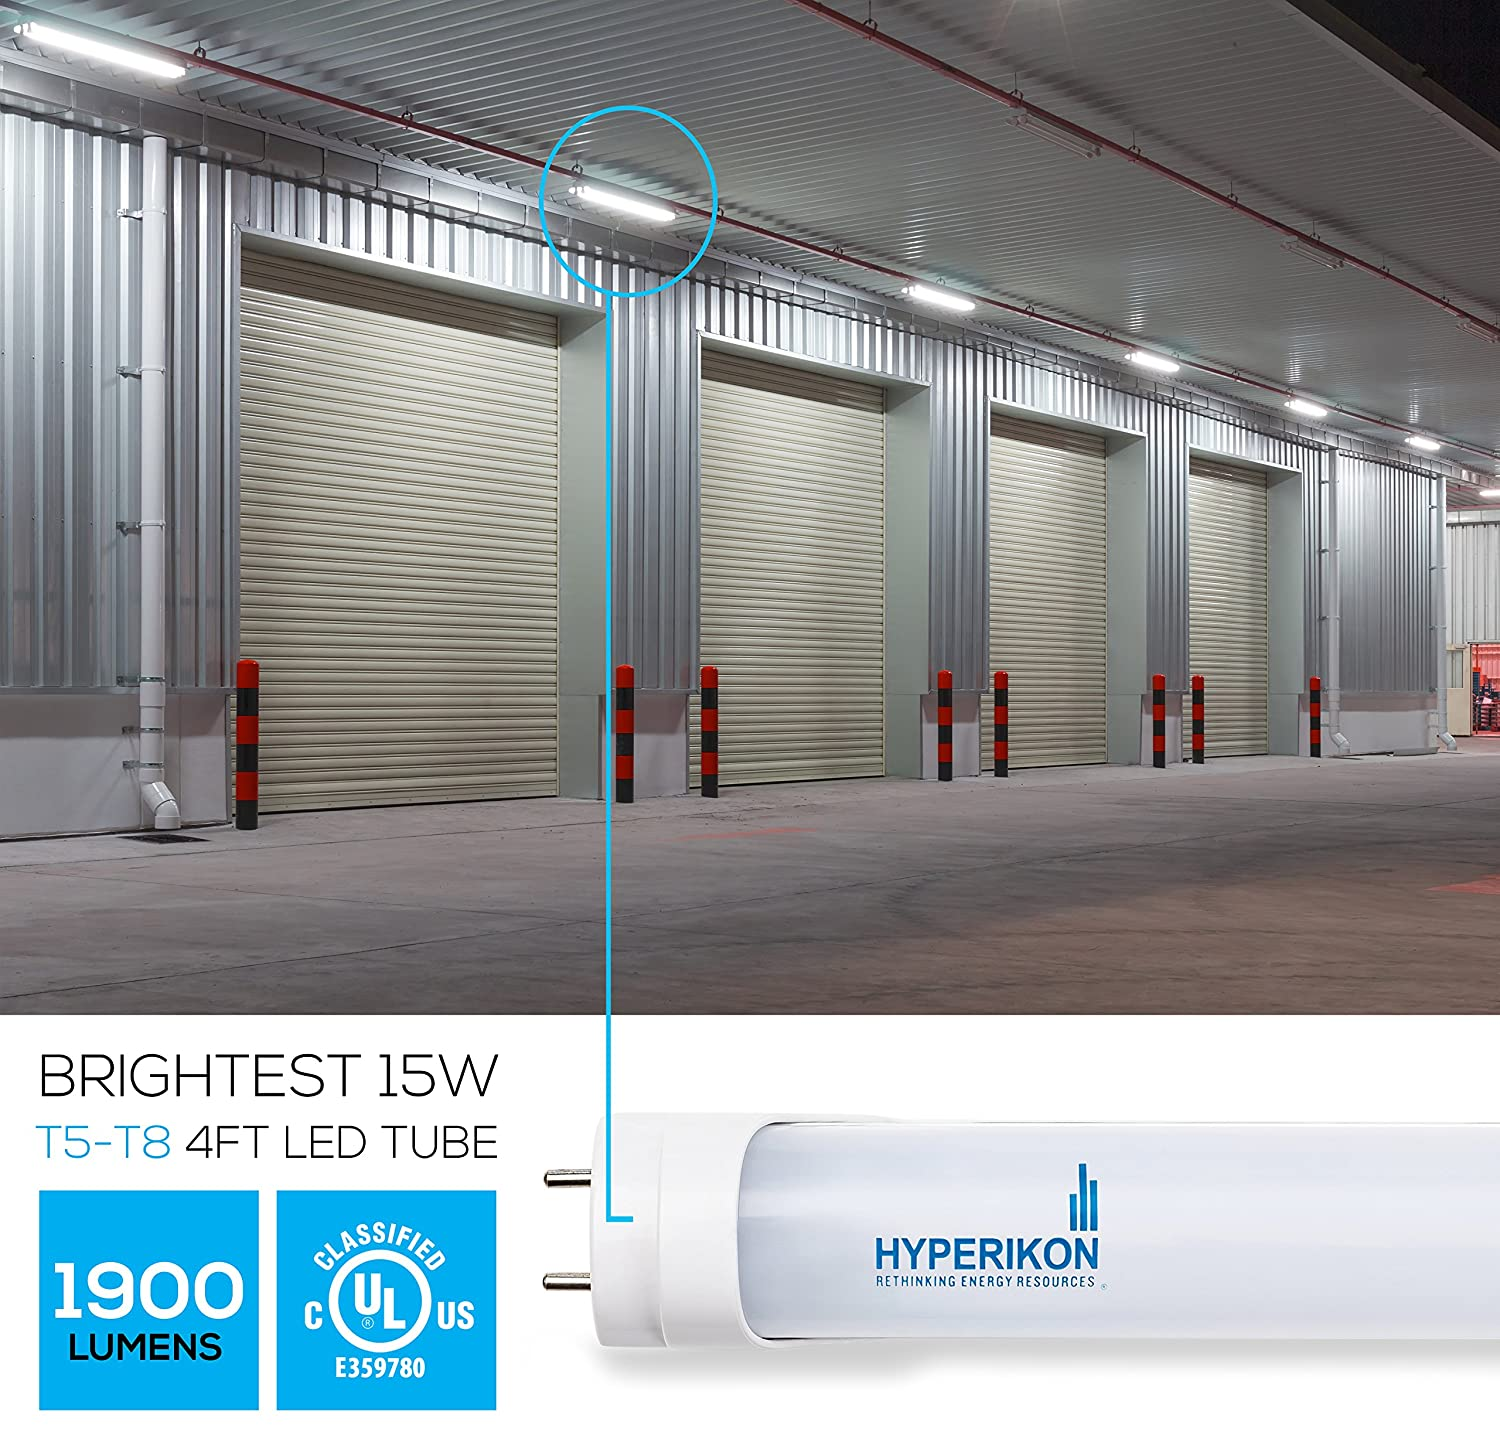 Hyperikon T5 T8 Led Light Tube 4 Ft 4525 Inches 22w 50w Wiring Diagram For 6 Bulb Fixture Equivalent 5000k Crystal White Glow 120 277v Dual End Powered Ballast Bypass Required